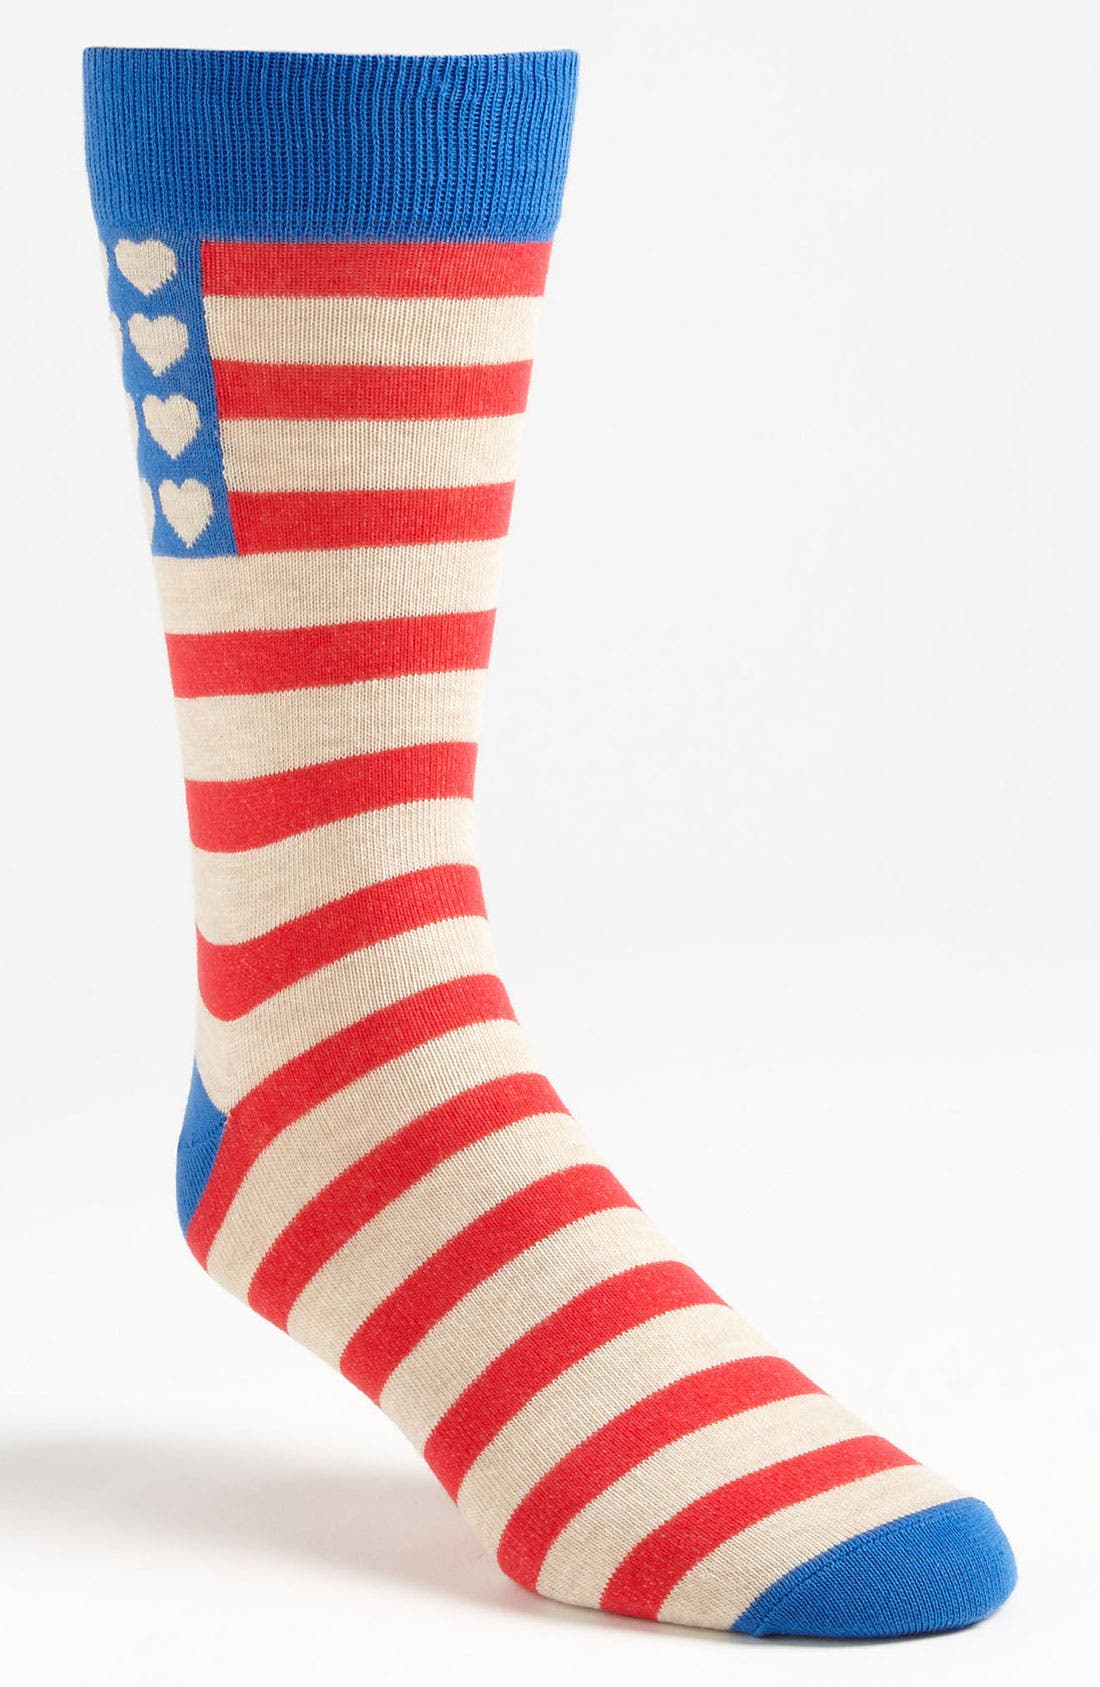 Alternate Image 1 Selected - Topman 'Valentines - America Sweetheart' Socks